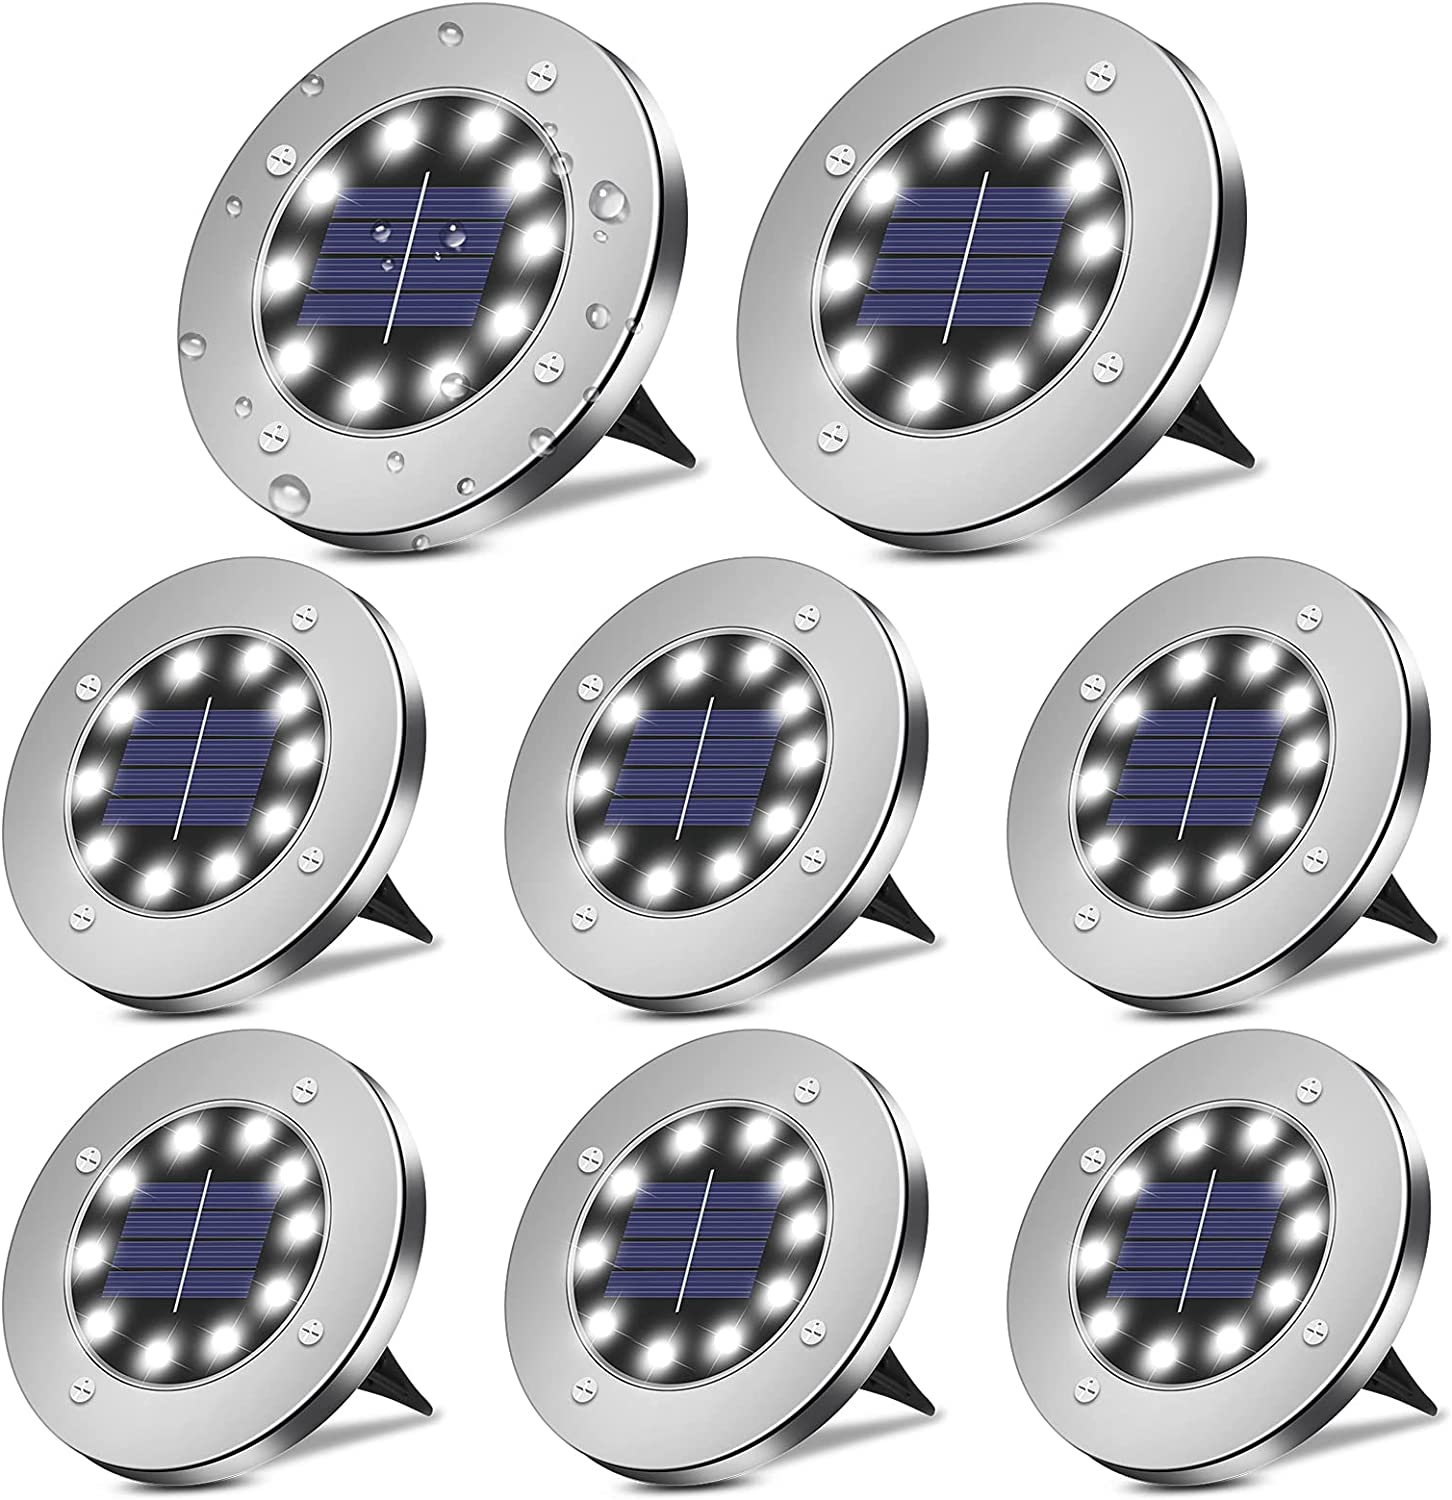 BROOM Solar Lights Outdoor Garden,(8 Packs)Solar Ground Lights , 10 LED Disk Lights Garden Waterproof Patio In-Ground Lights for Lawn, Pathway, Yard, Driveway, Step and Walkway (Cold White)